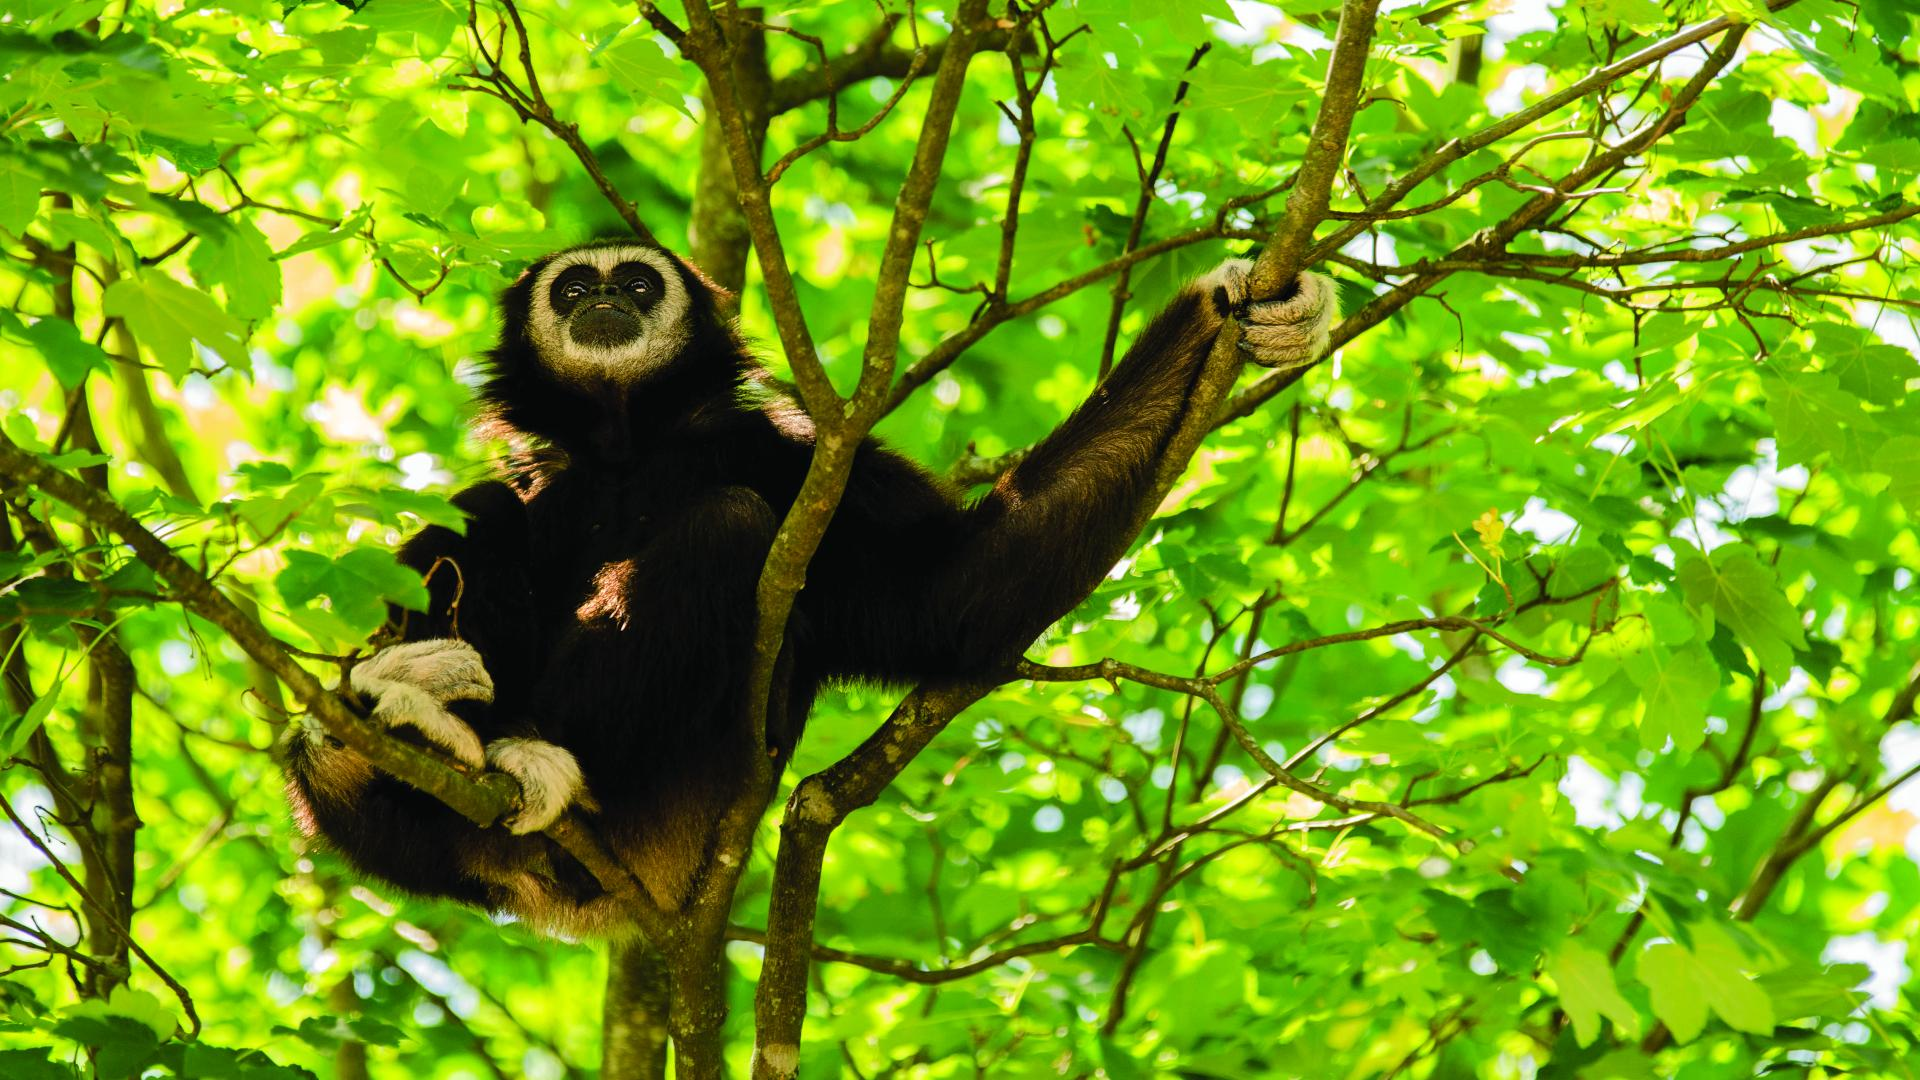 Gibbon sitting in a tree